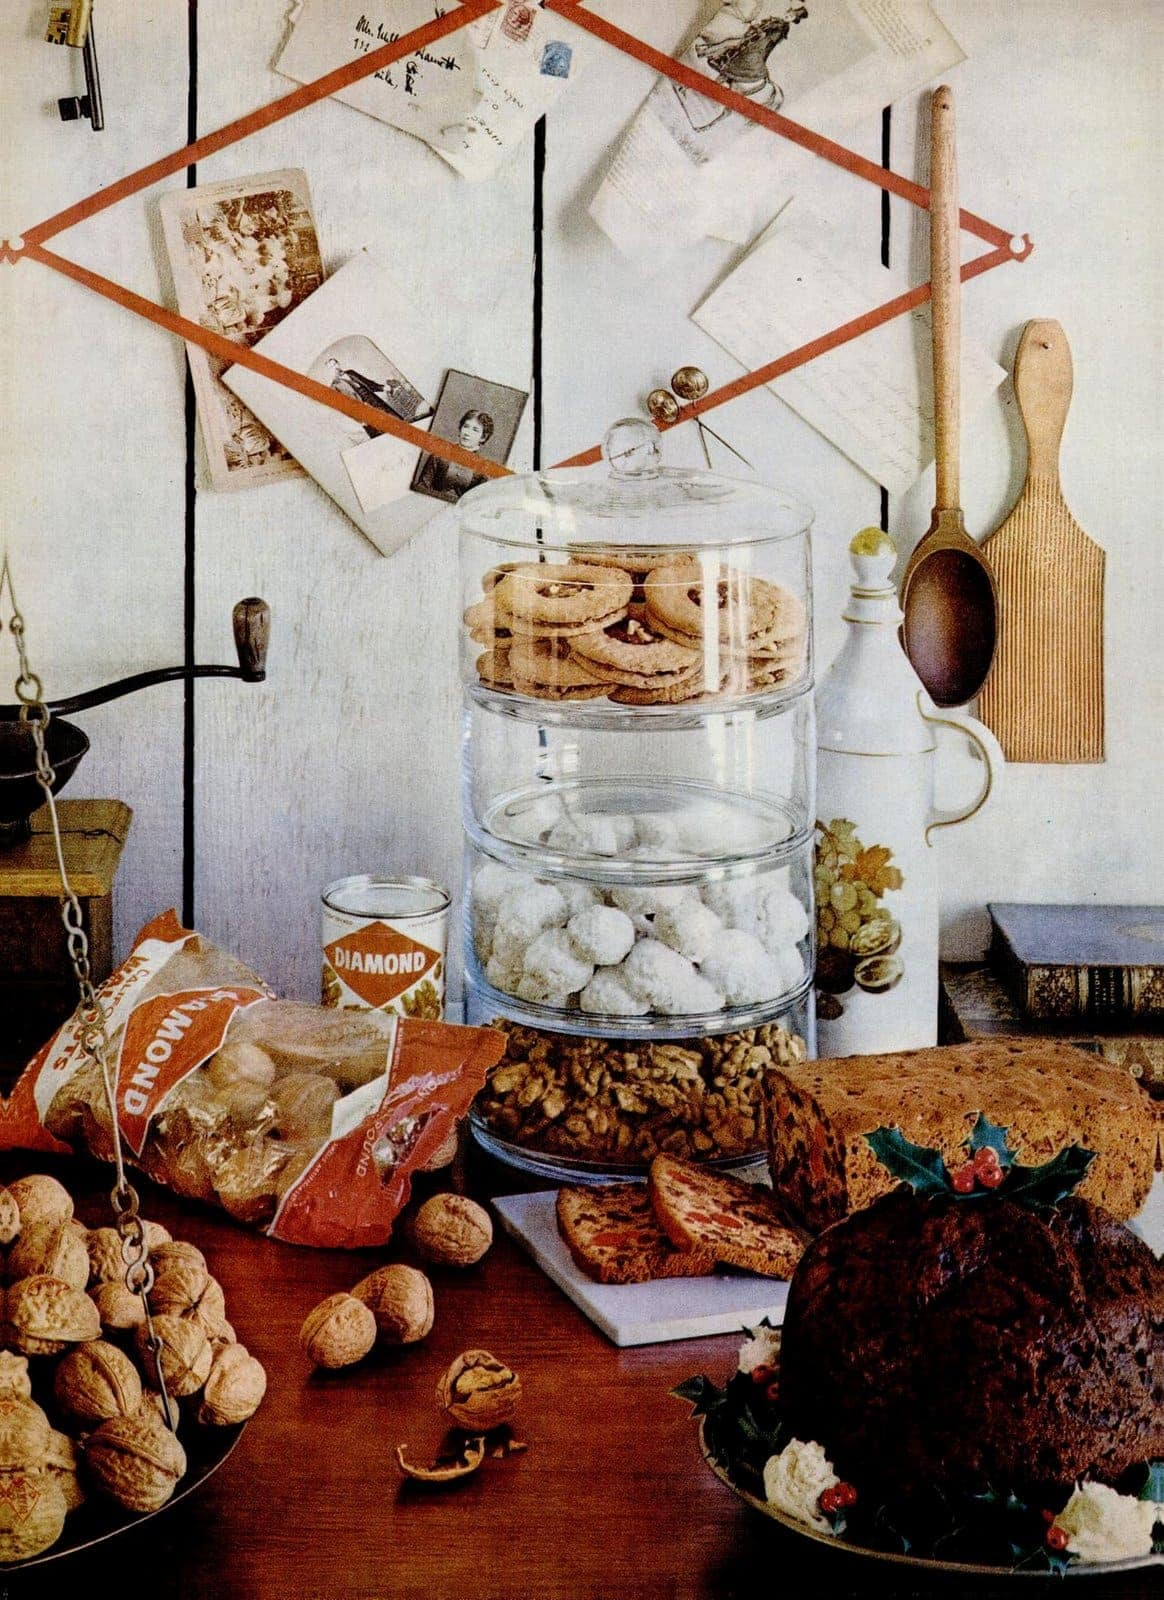 12 of the best-loved traditional holiday recipes from the 1950s